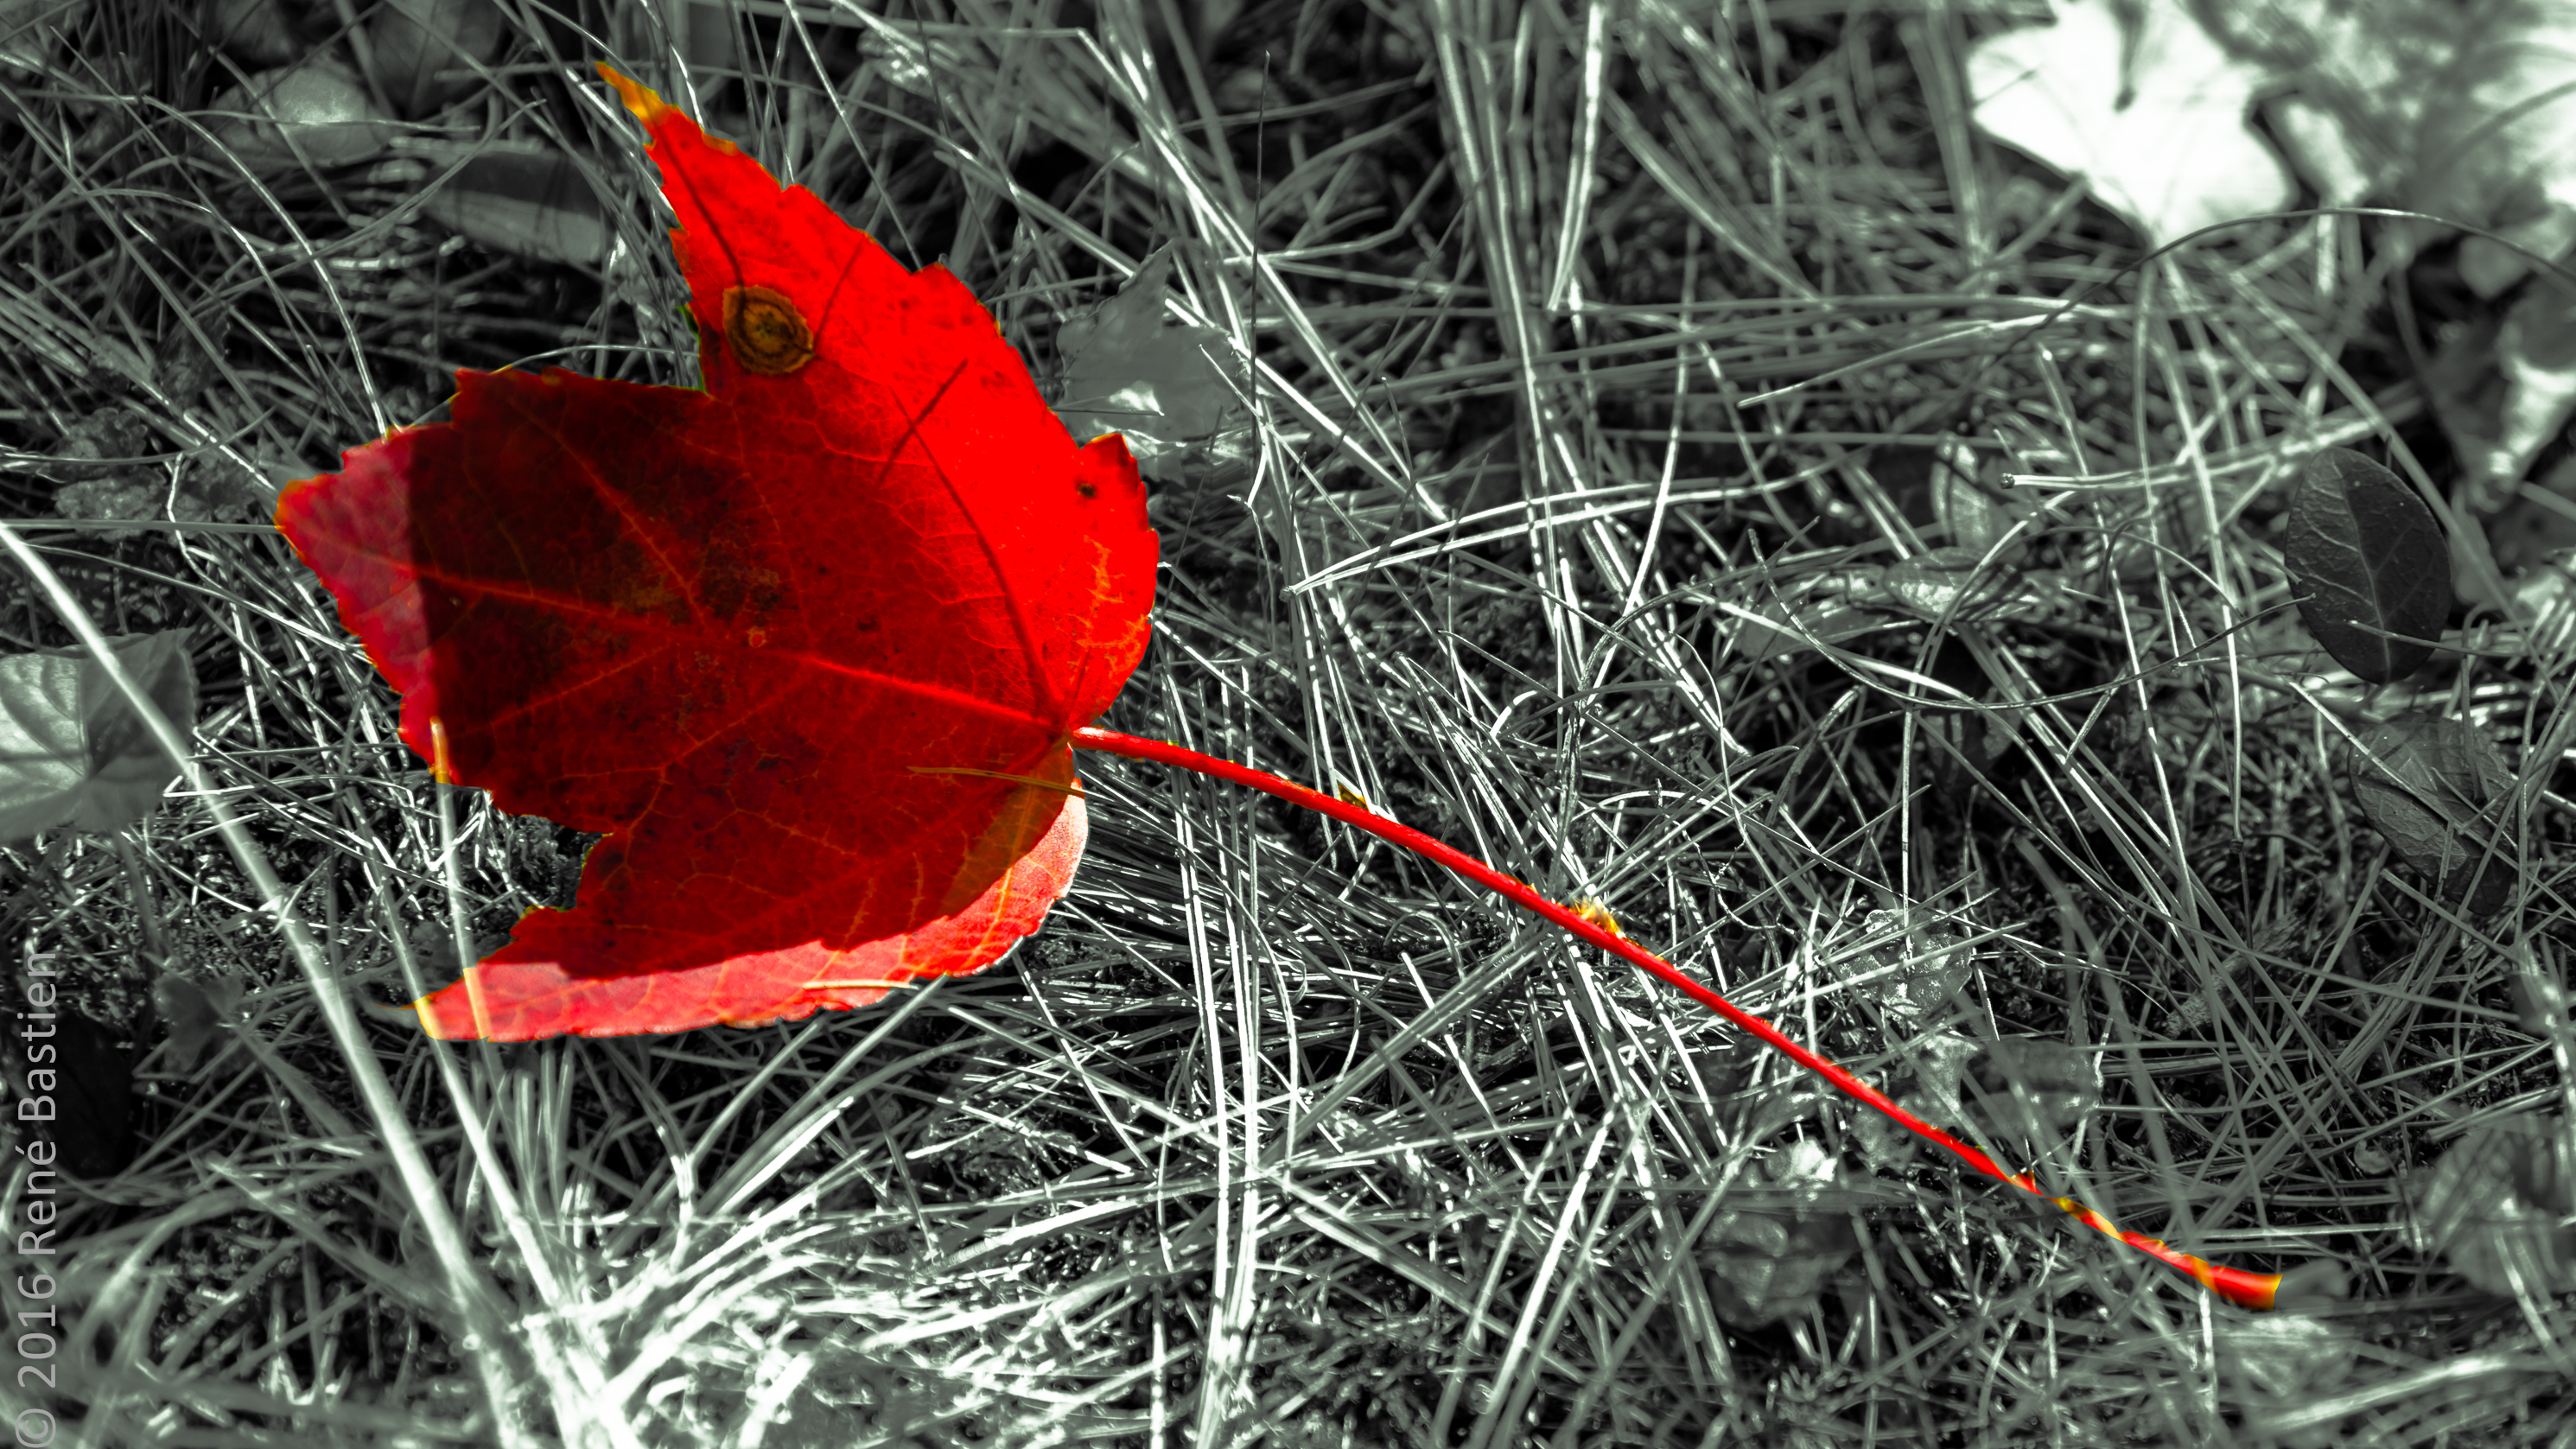 b&w red leaf